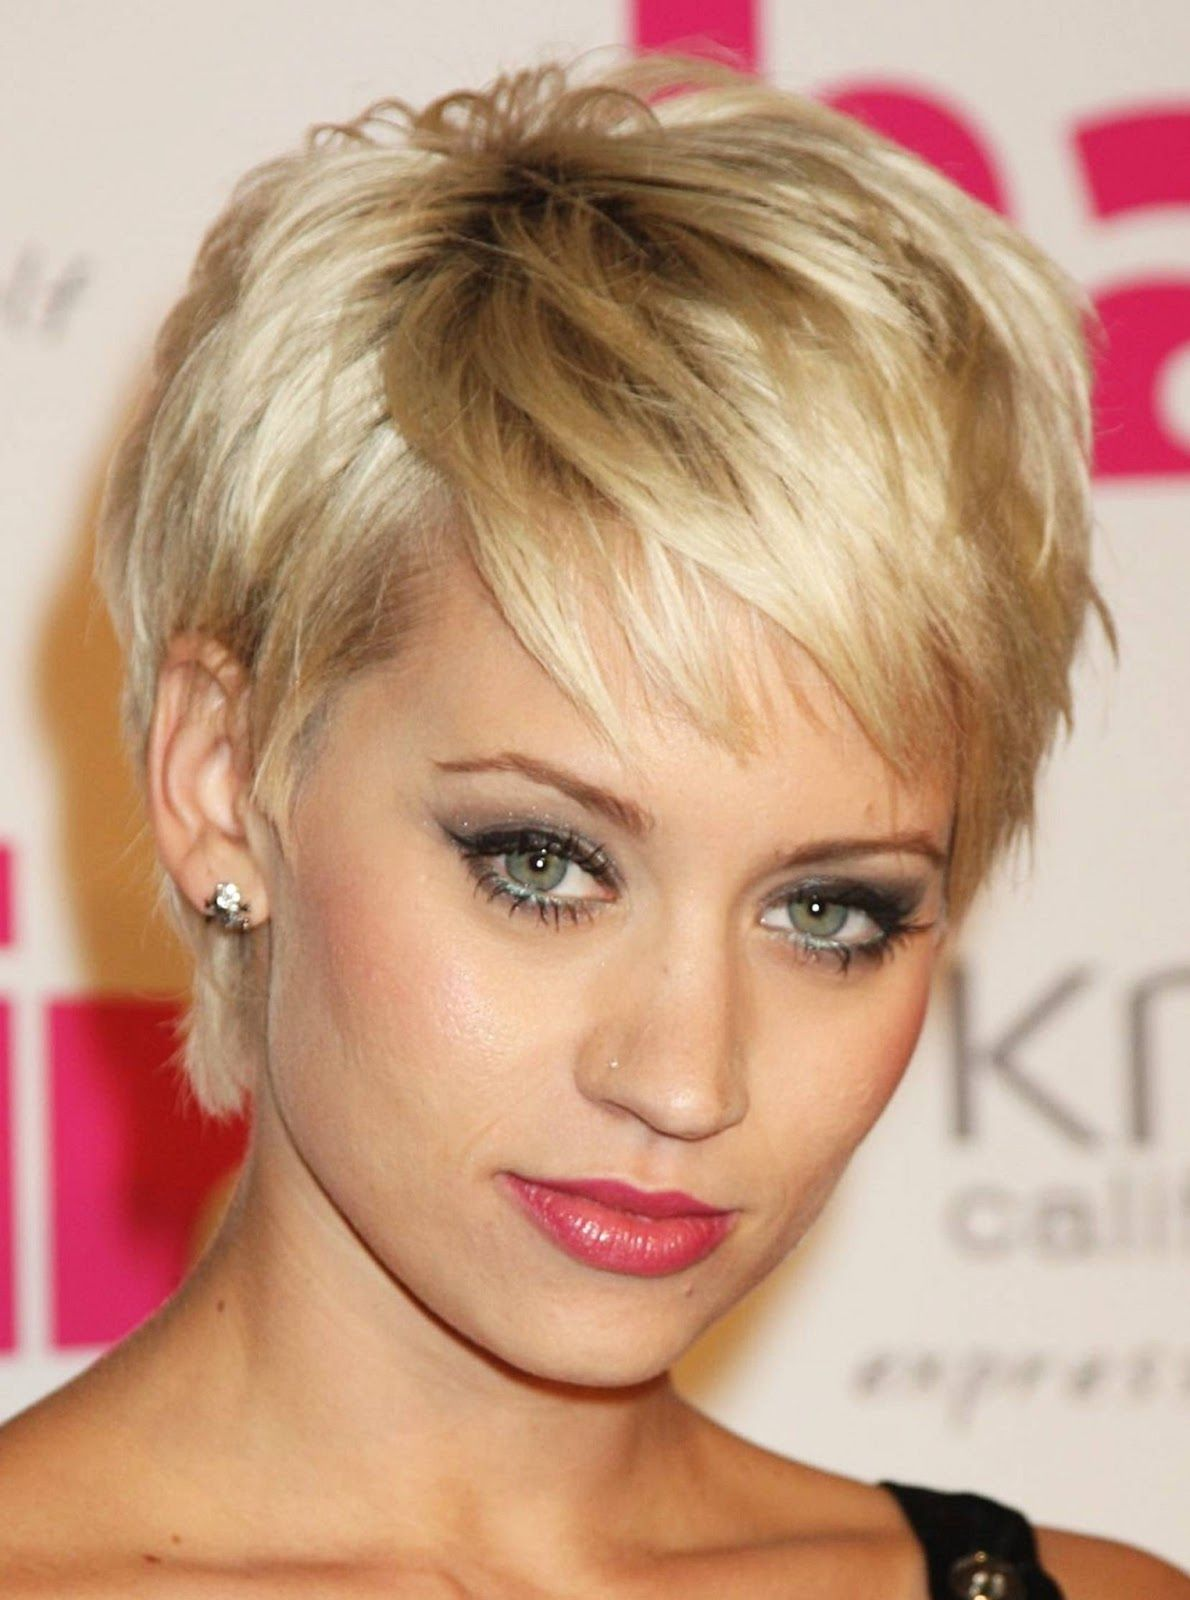 Groovy 1000 Images About Hairstyles On Pinterest Short Hair Styles Short Hairstyles Gunalazisus